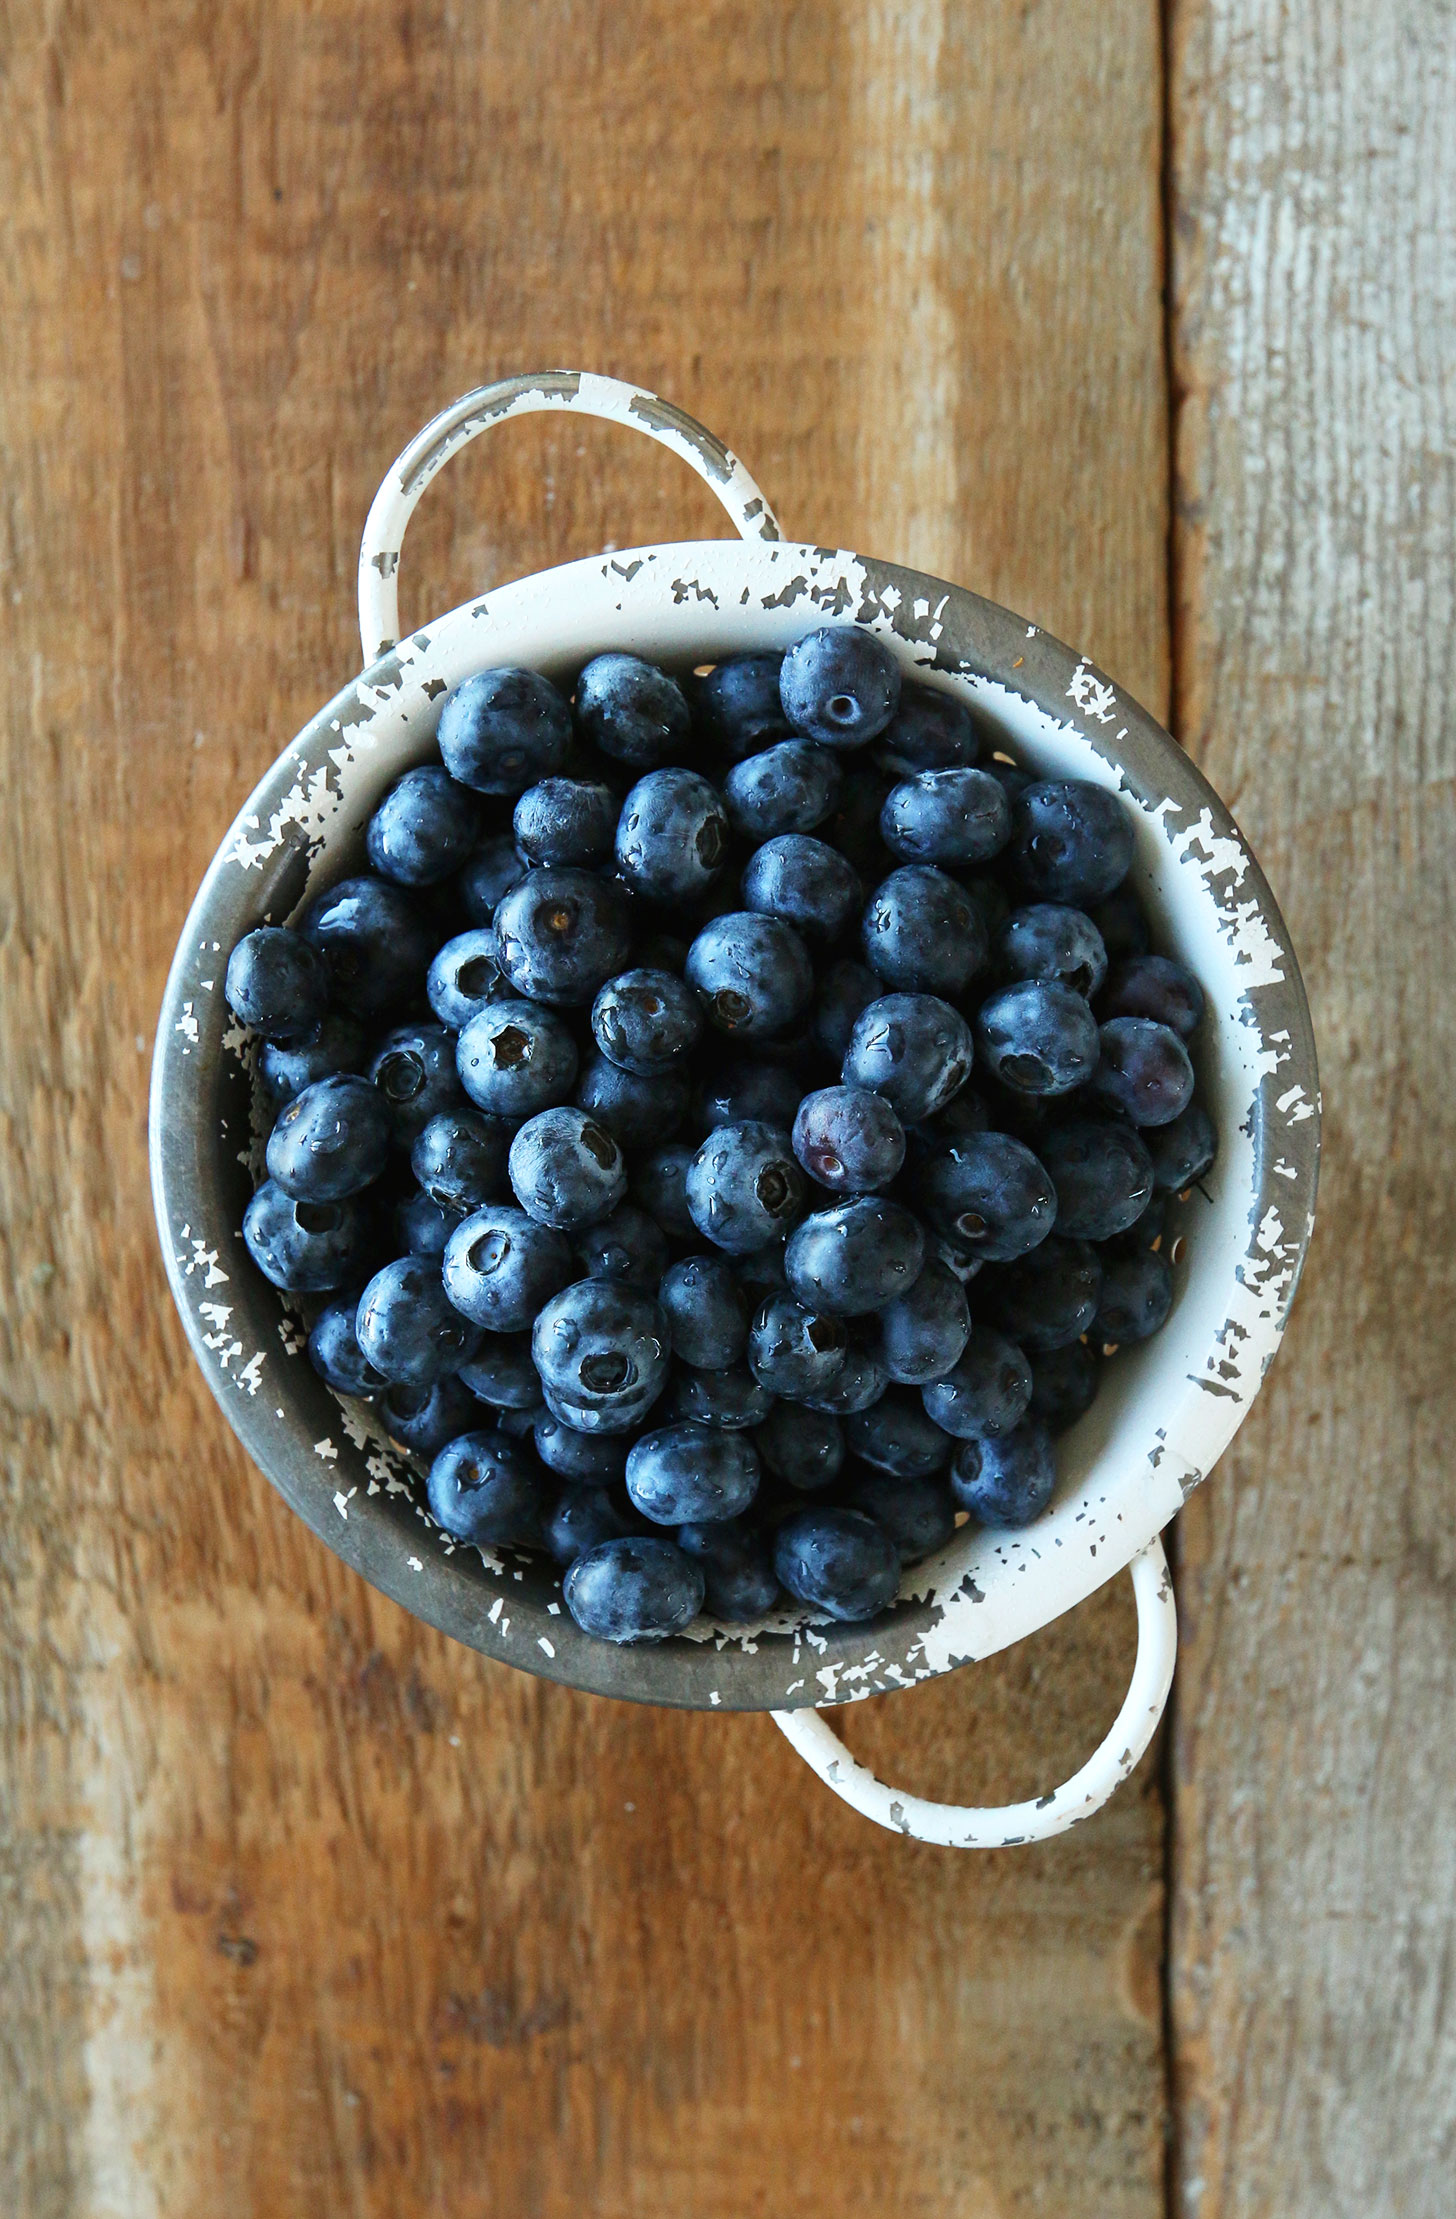 Fresh blueberries ready to be made into a delicious vegan summer dessert